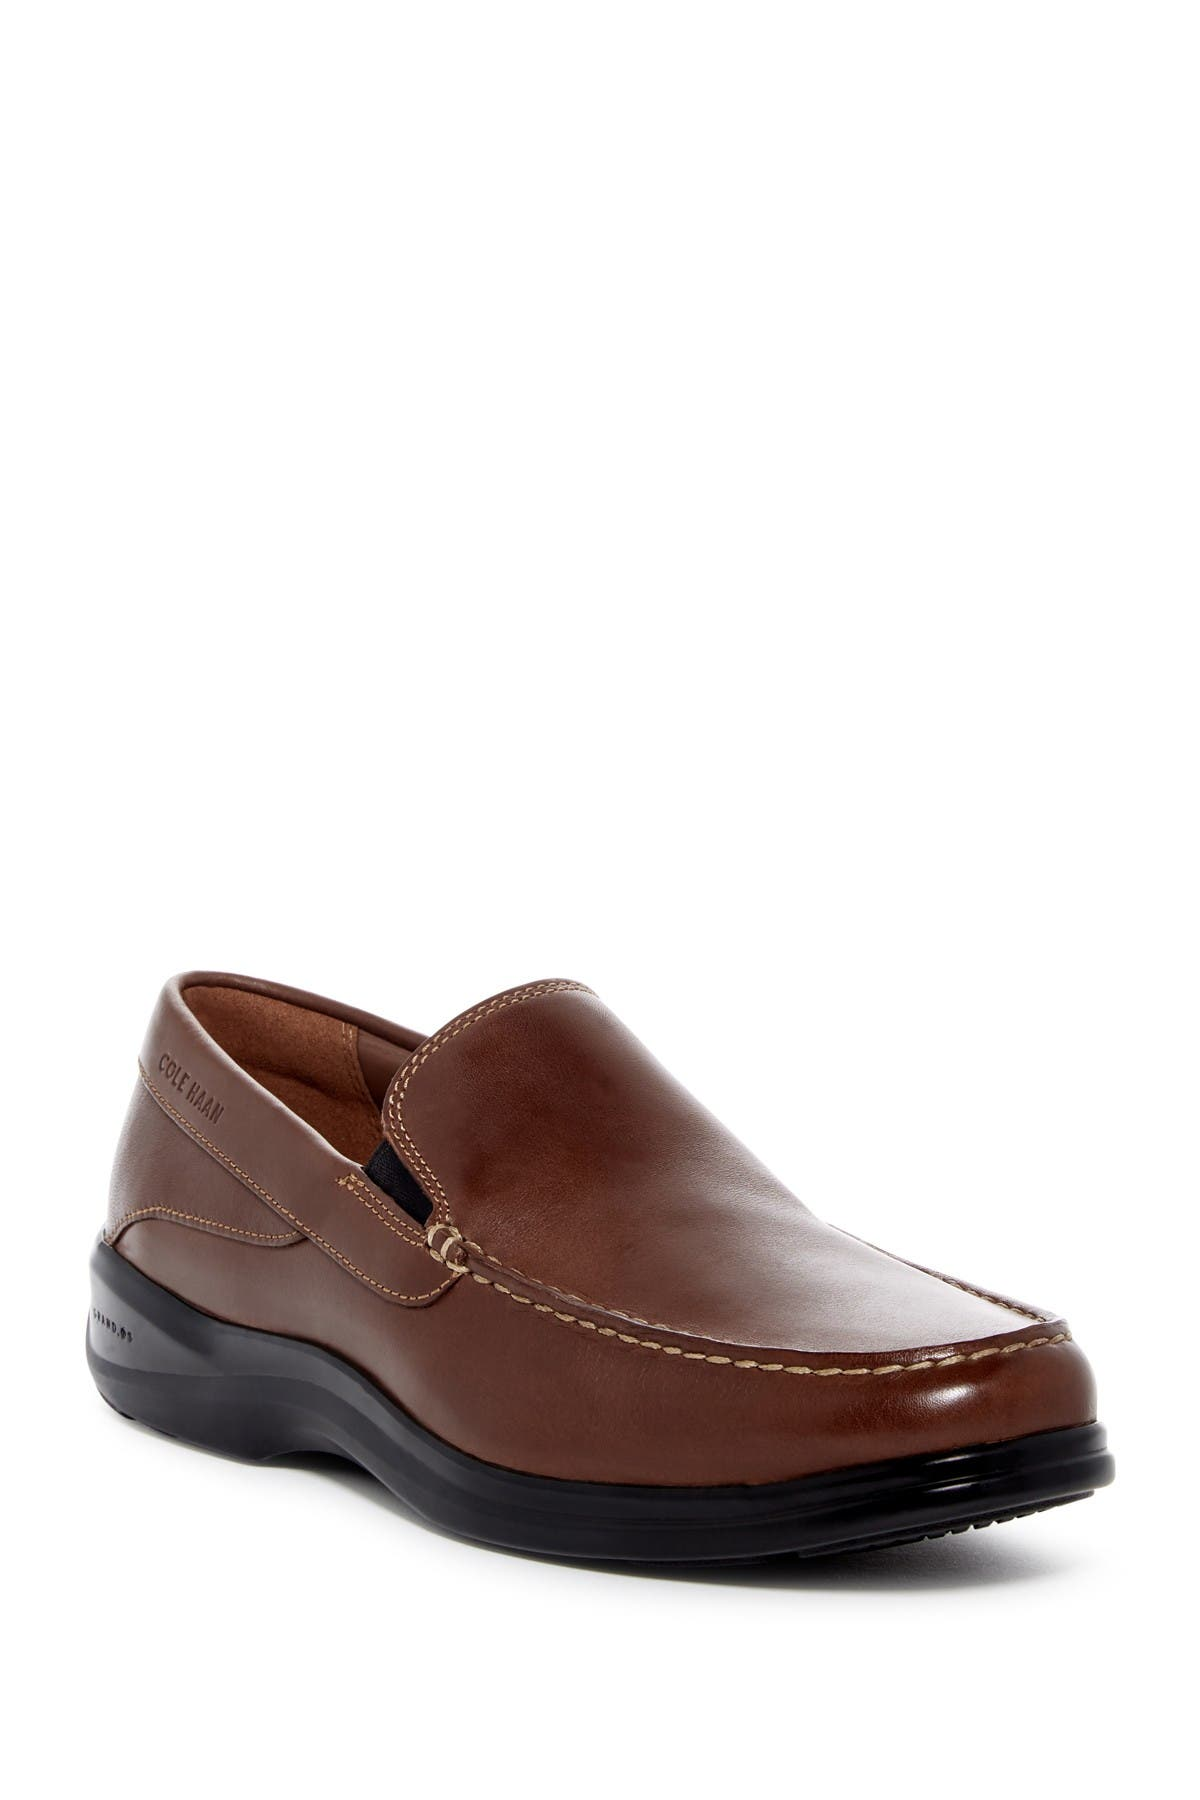 Image of Cole Haan Santa Barbara Twin Gore Loafer